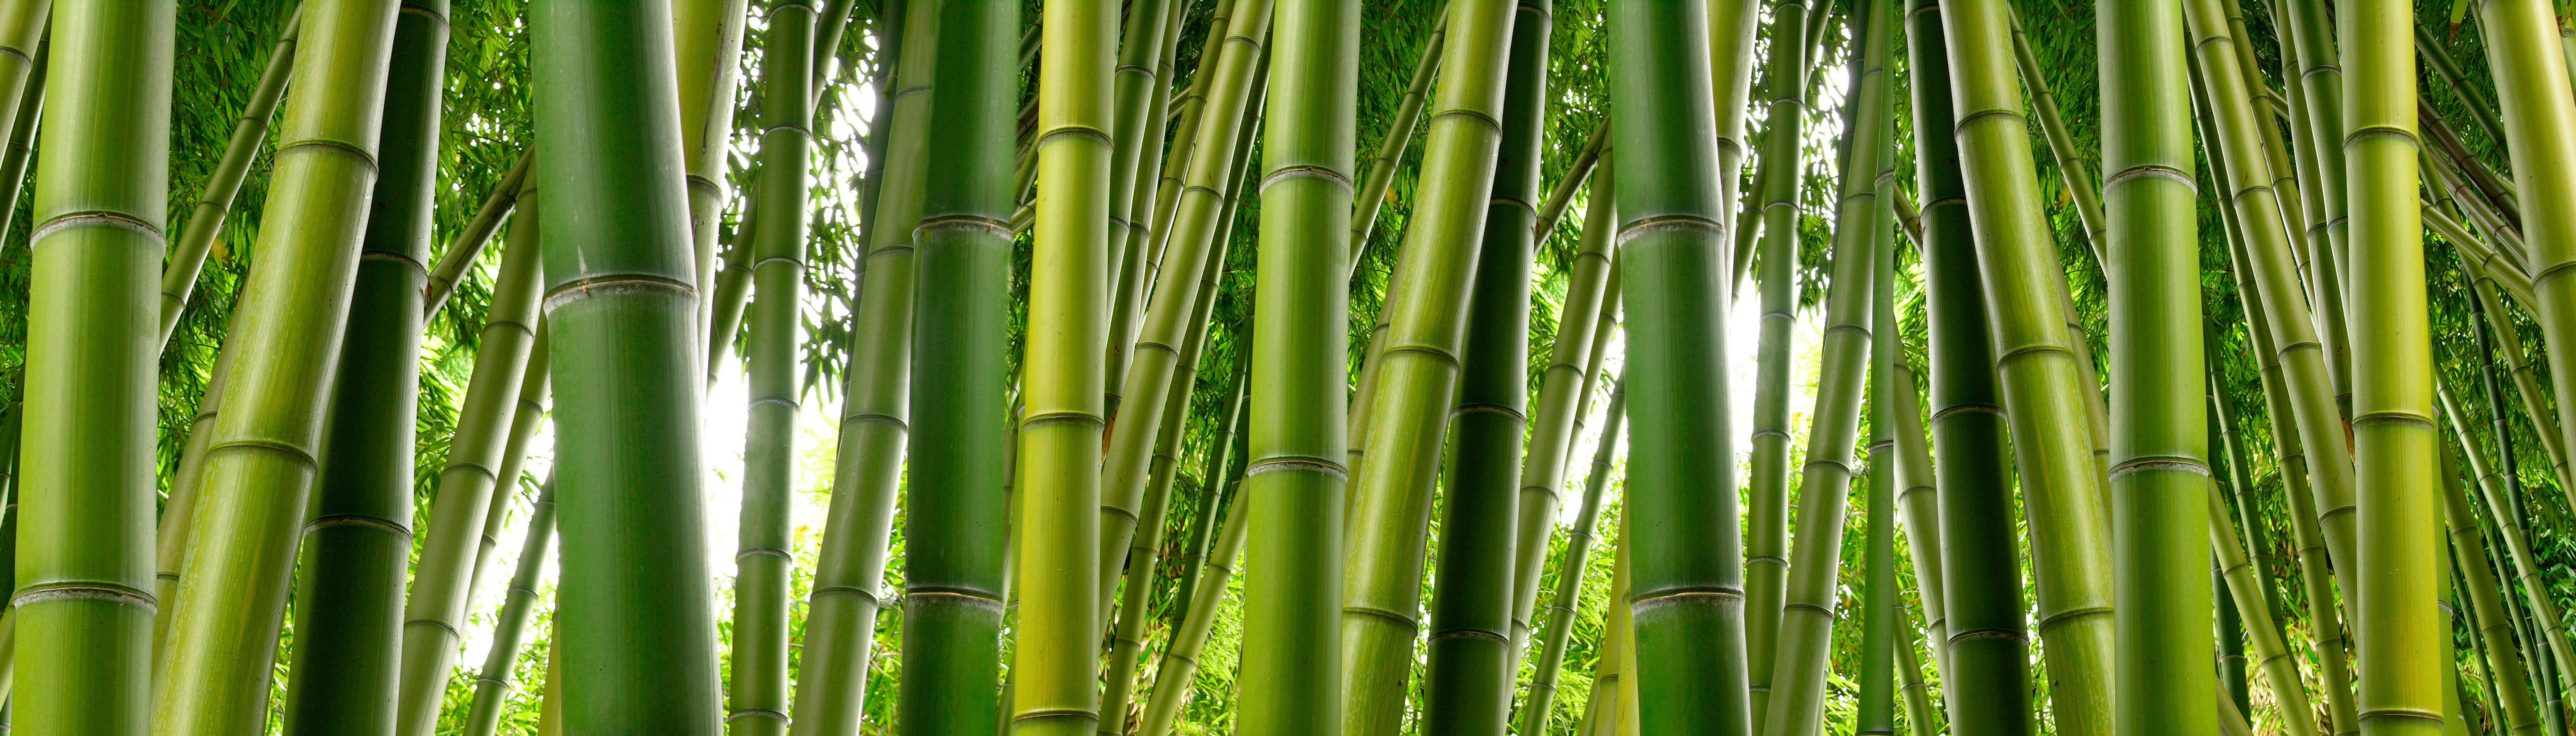 Tall stalks of green bamboo dense in a jungle setting.